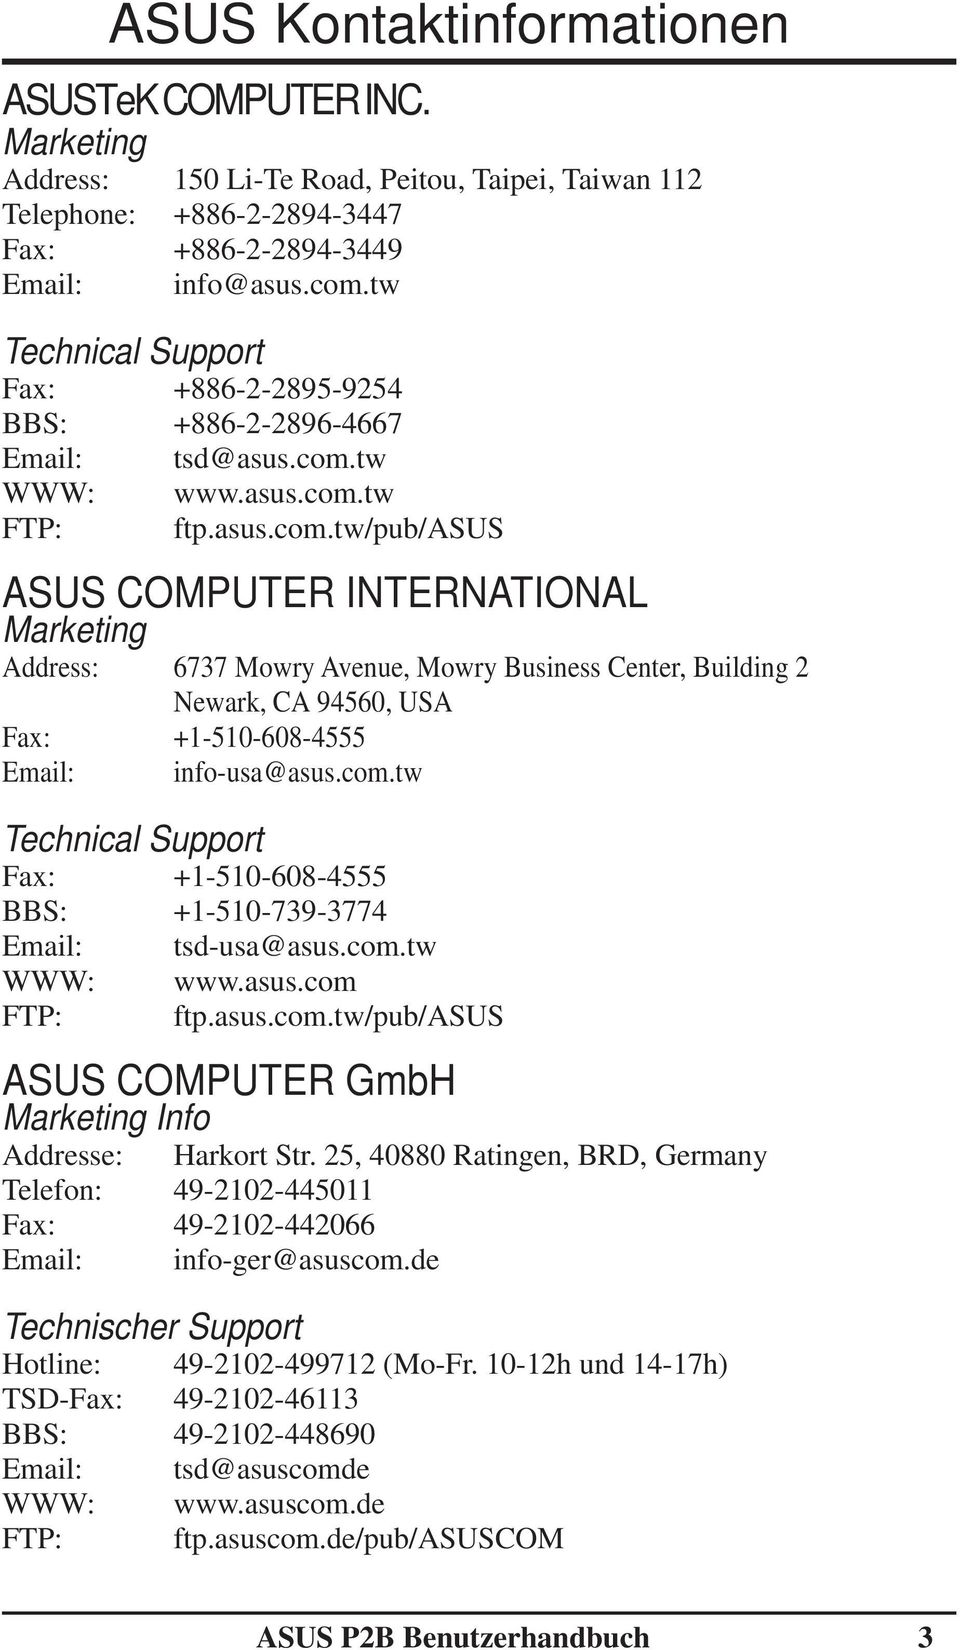 tw WWW: www.asus.com.tw FTP: ftp.asus.com.tw/pub/asus ASUS COMPUTER INTERNATIONAL Marketing Address: 6737 Mowry Avenue, Mowry Business Center, Building 2 Newark, CA 94560, USA Fax: +1-510-608-4555 Email: info-usa@asus.